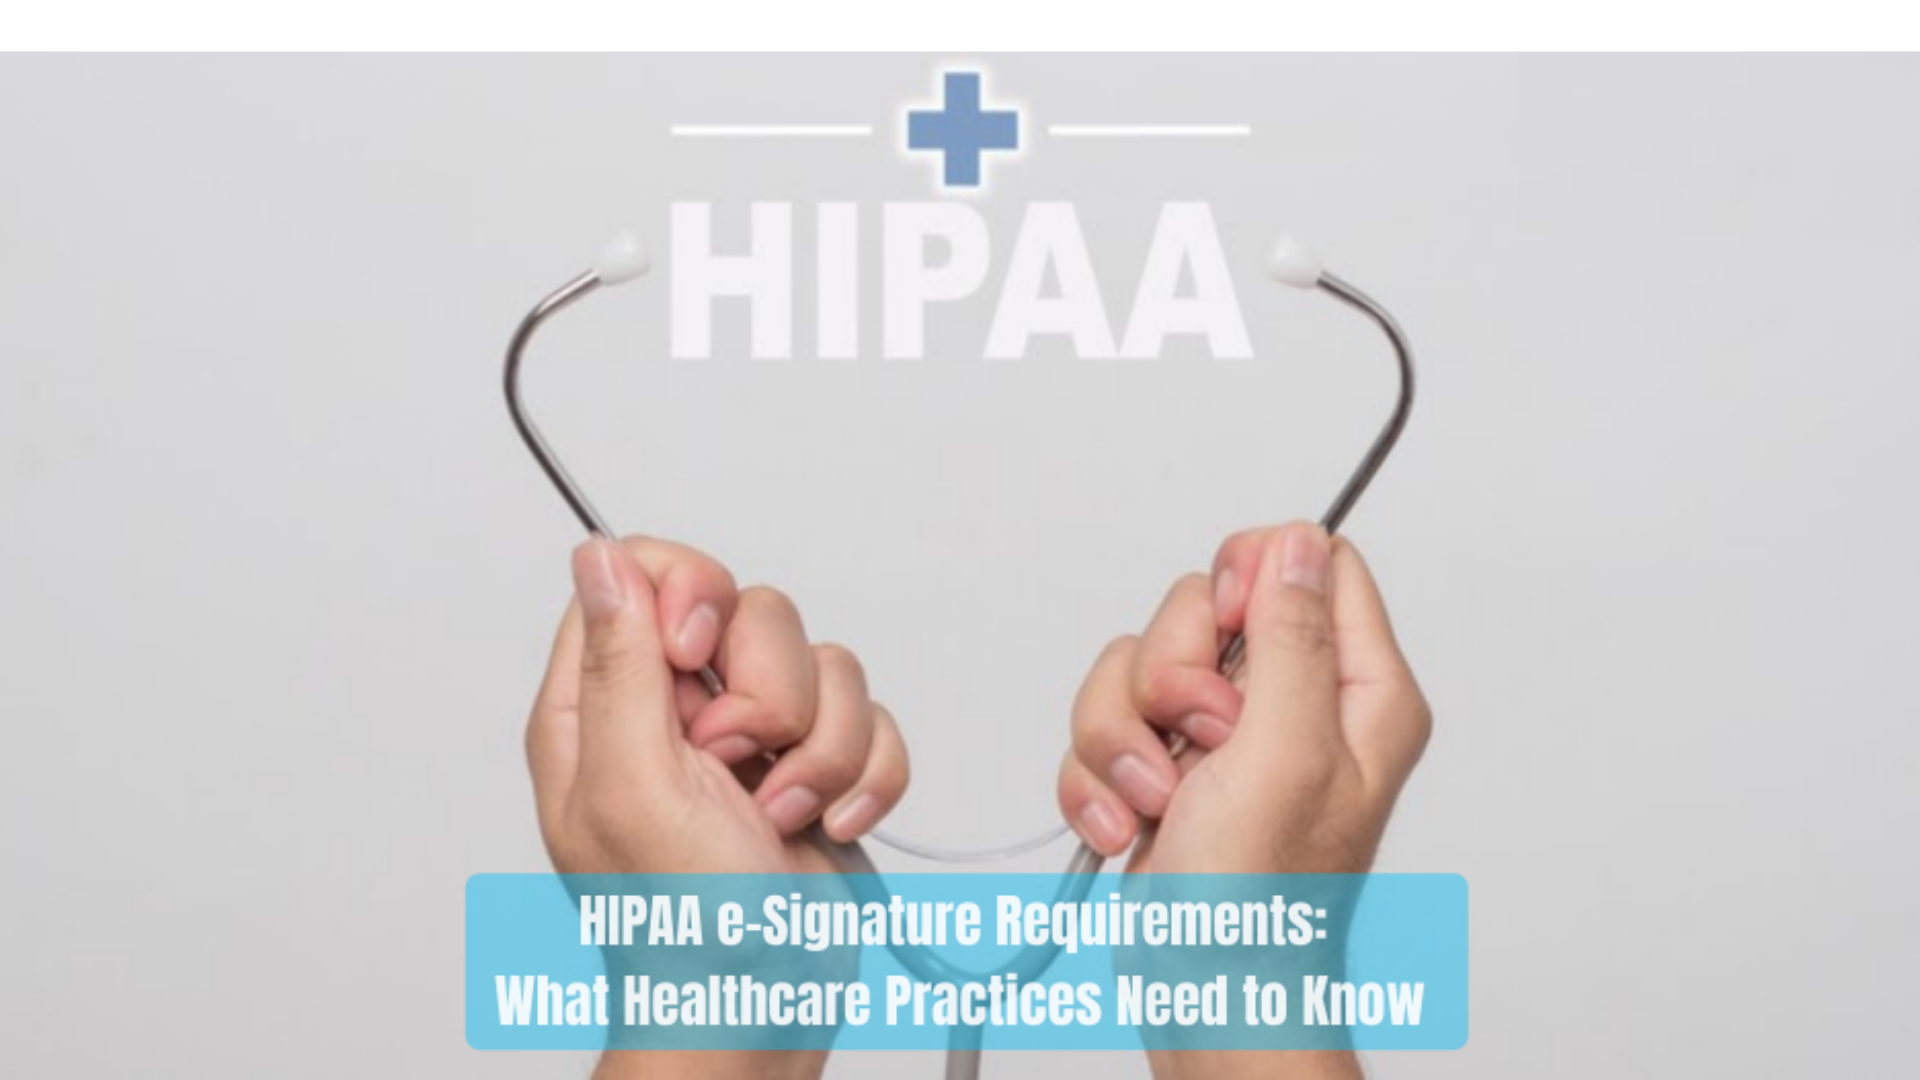 HIPAA e-Signature Requirements: What Healthcare Practices Need to Know